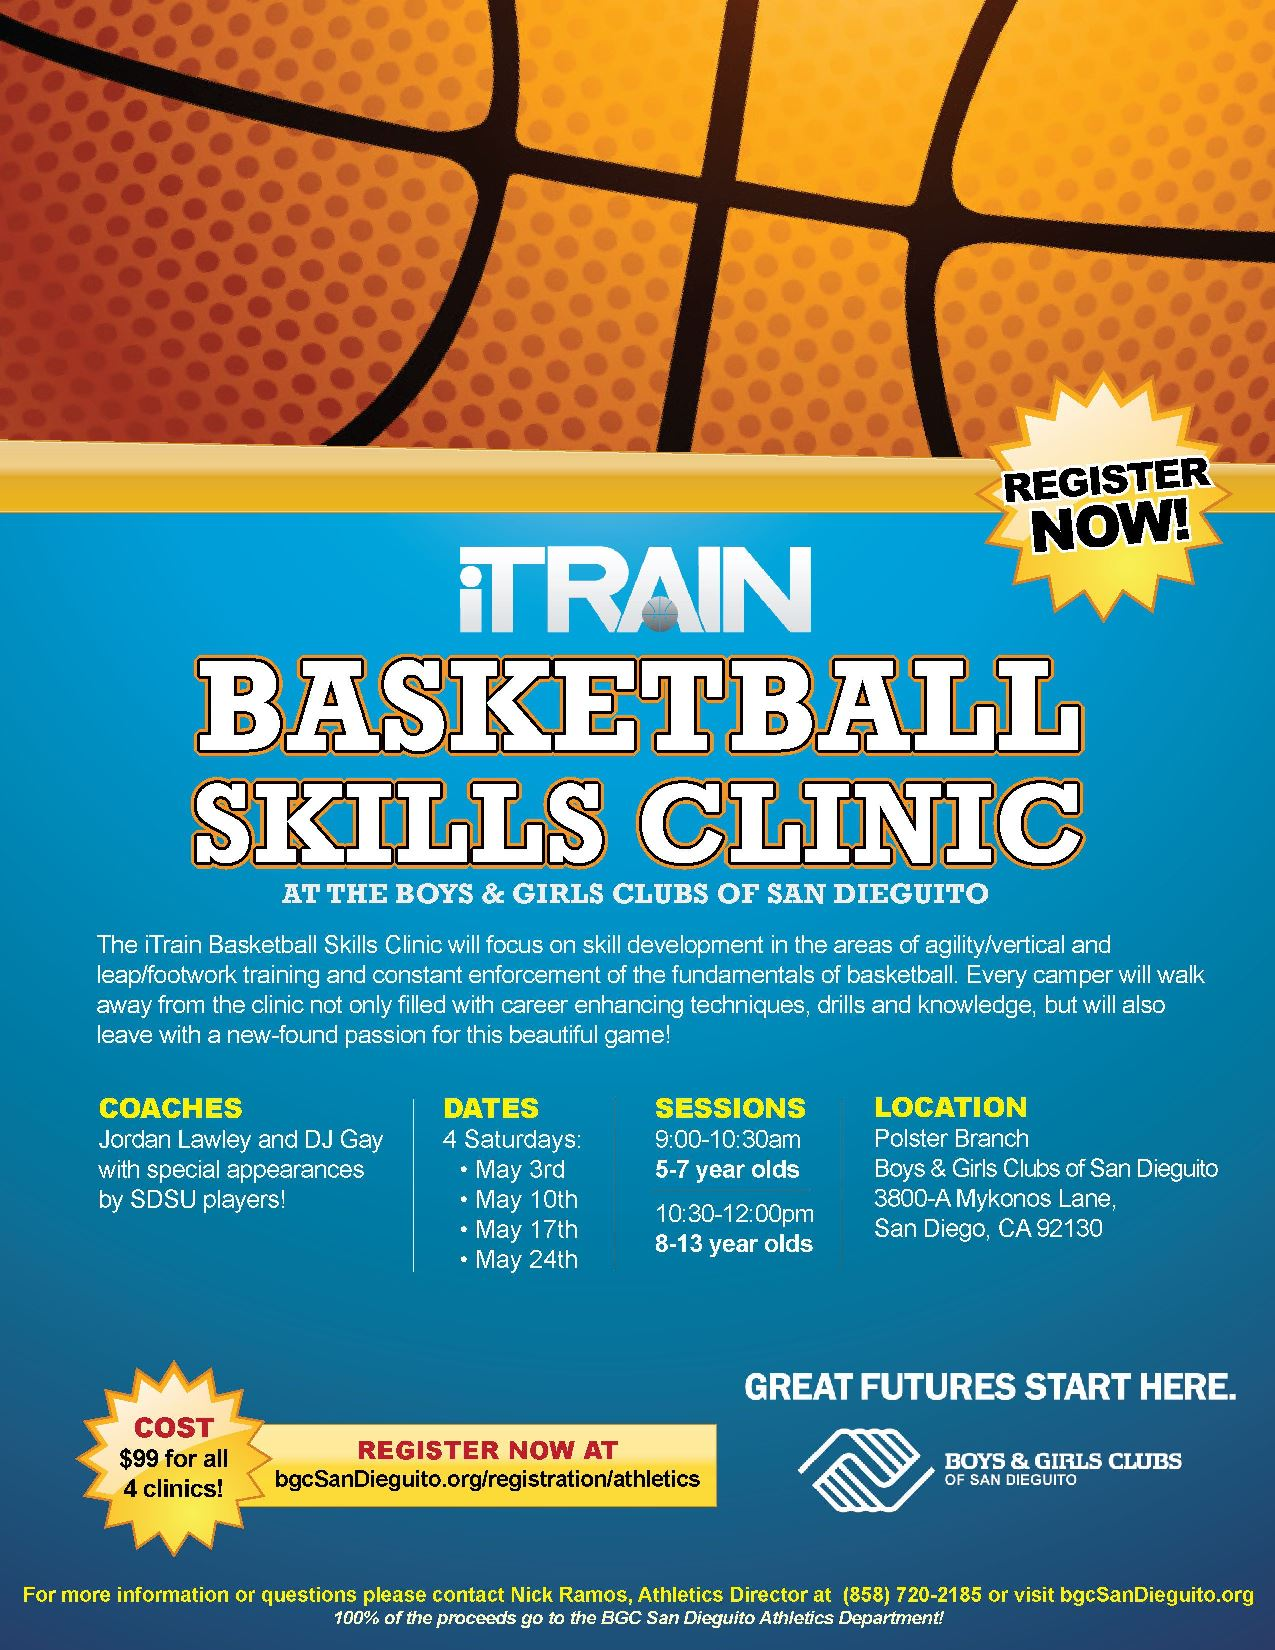 007 Breathtaking Basketball Flyer Template Free Image  Brochure Tryout CampFull